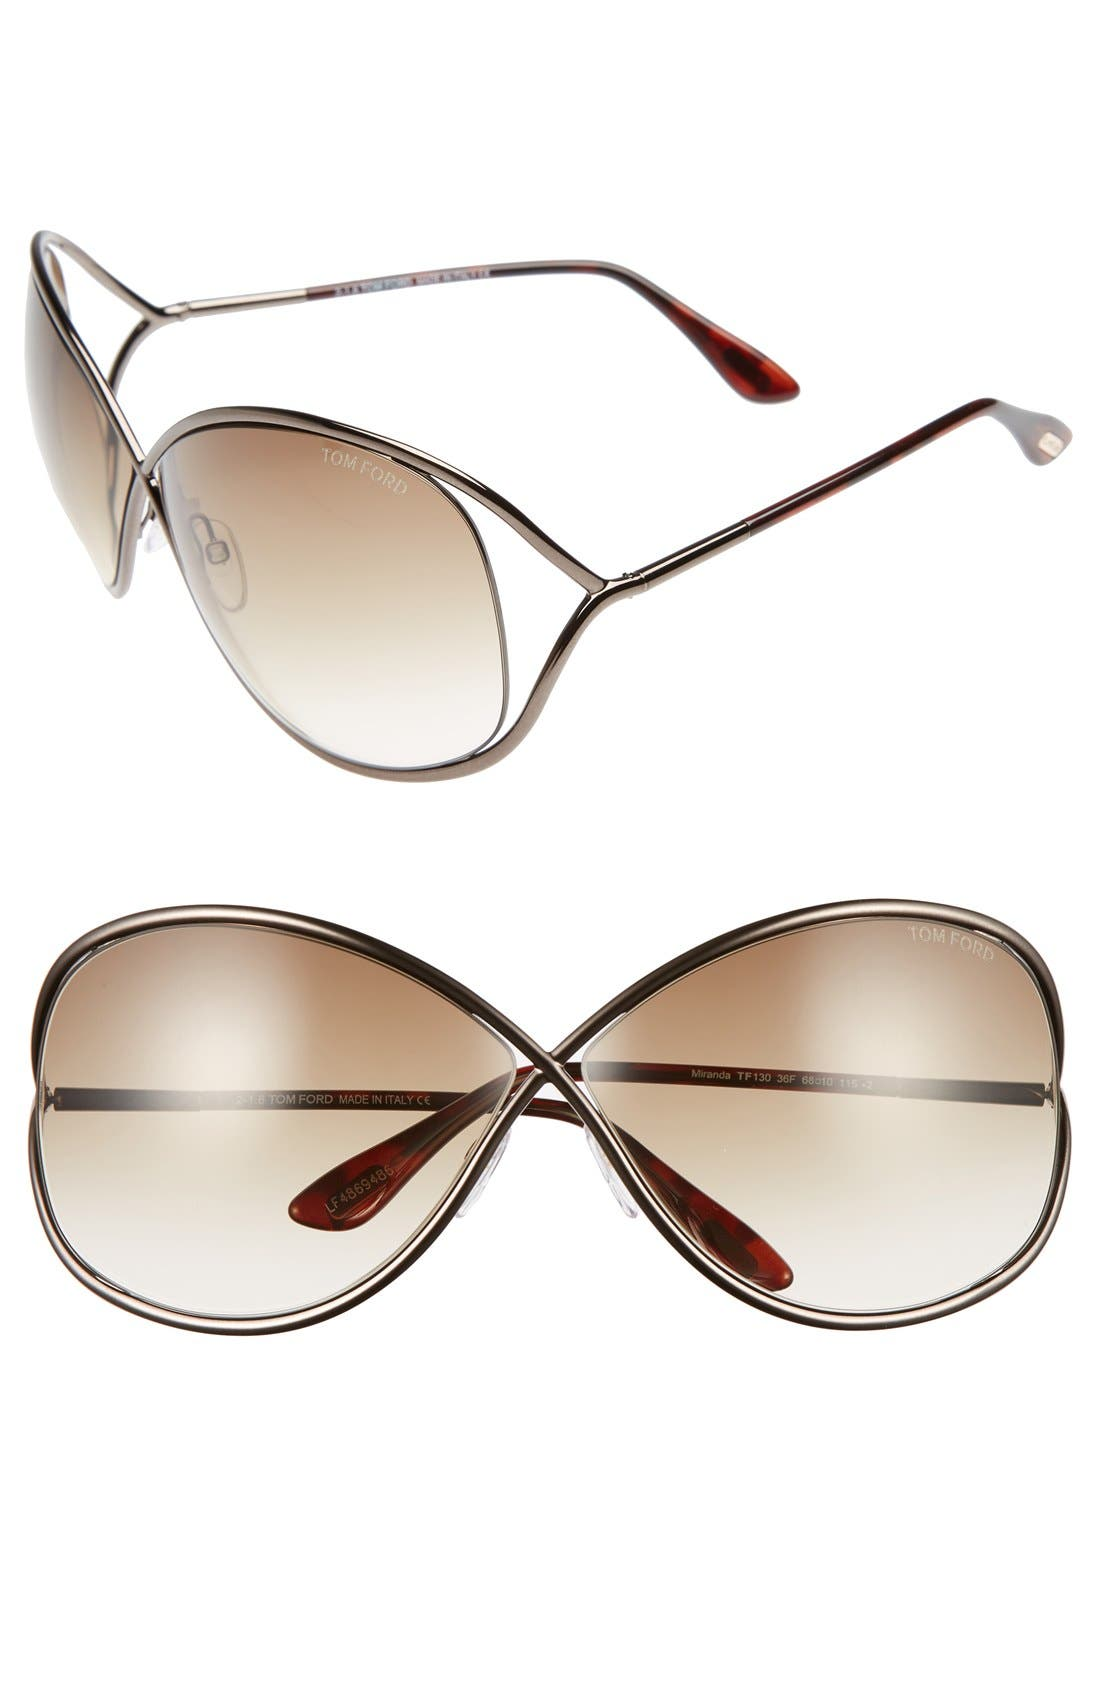 413a56251249 For Women Tom Ford Sunglasses for Women   Men